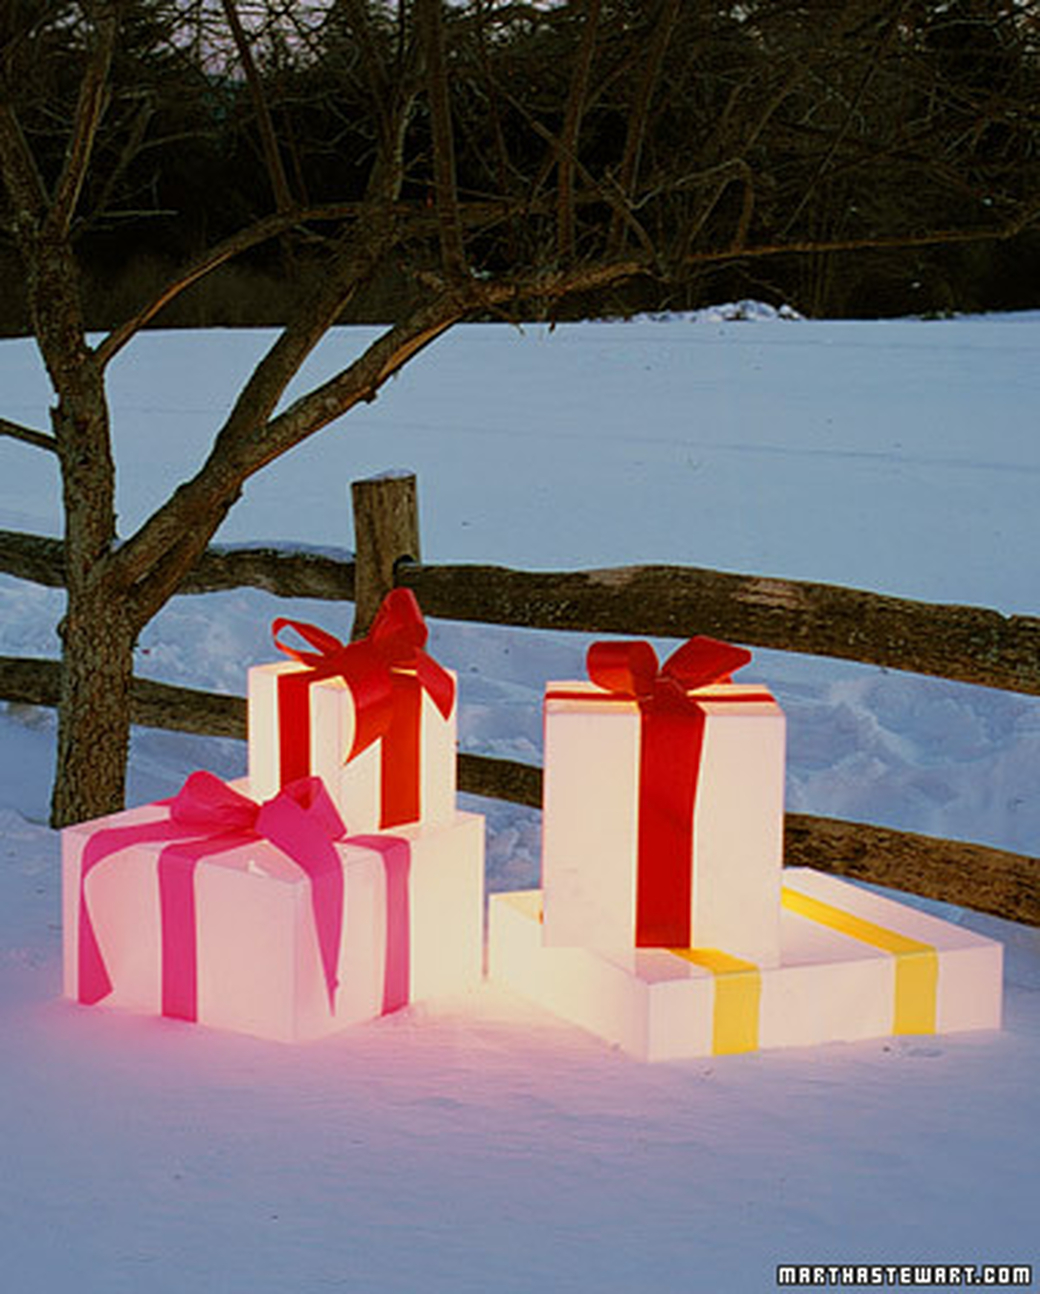 4. Glowing Gift Boxes